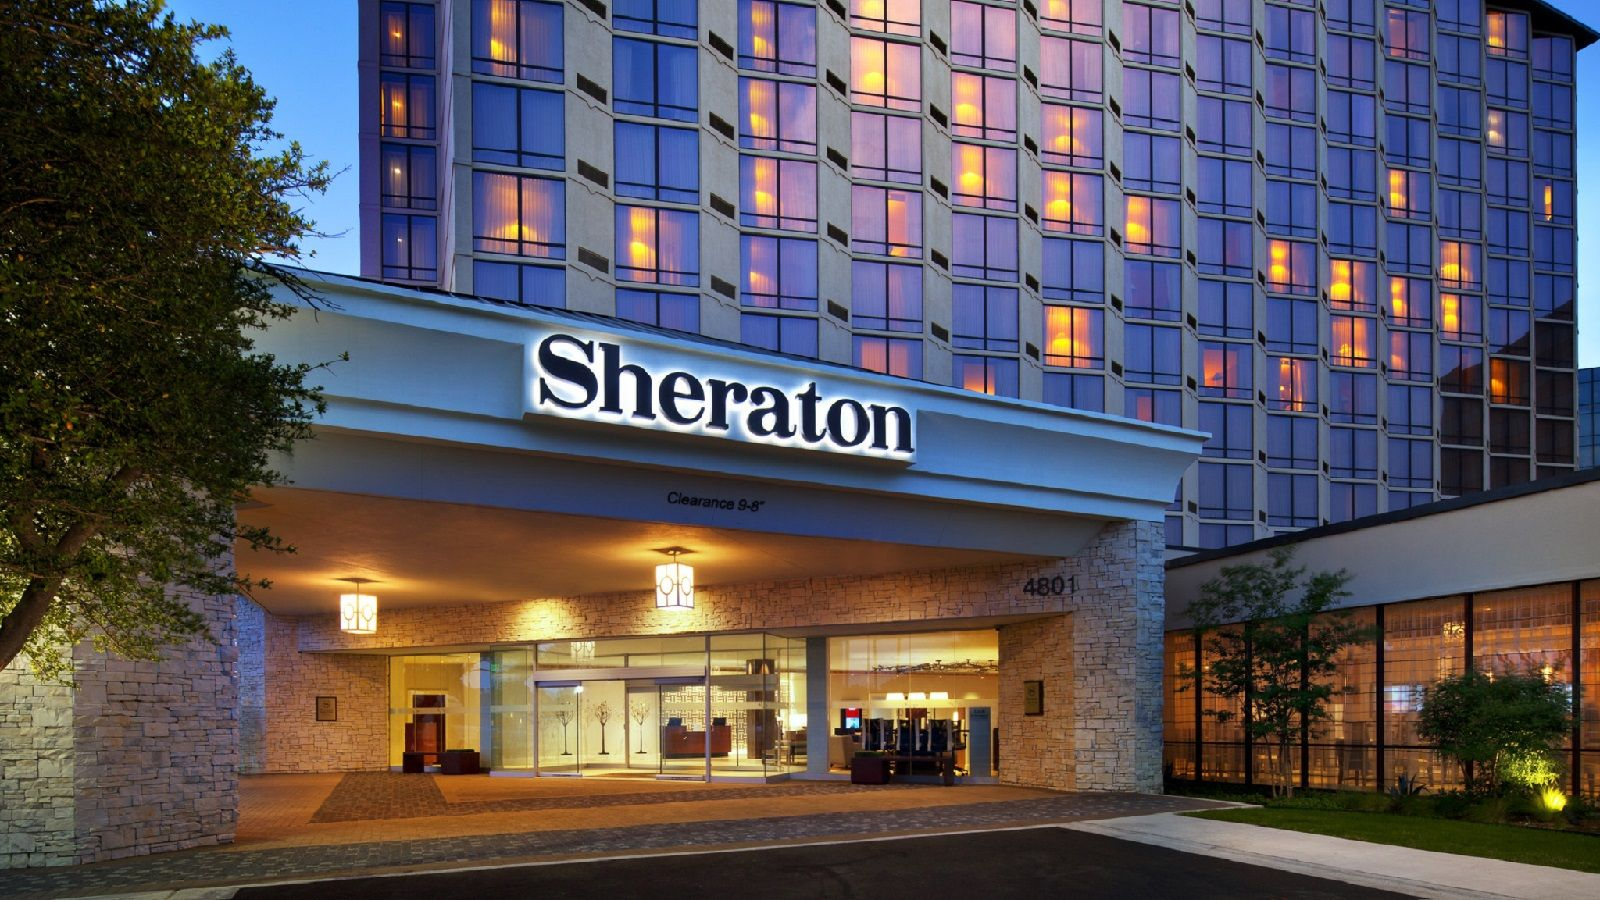 Hotel near the Galleria Dallas - Sheraton Dallas Hotel by the Galleria